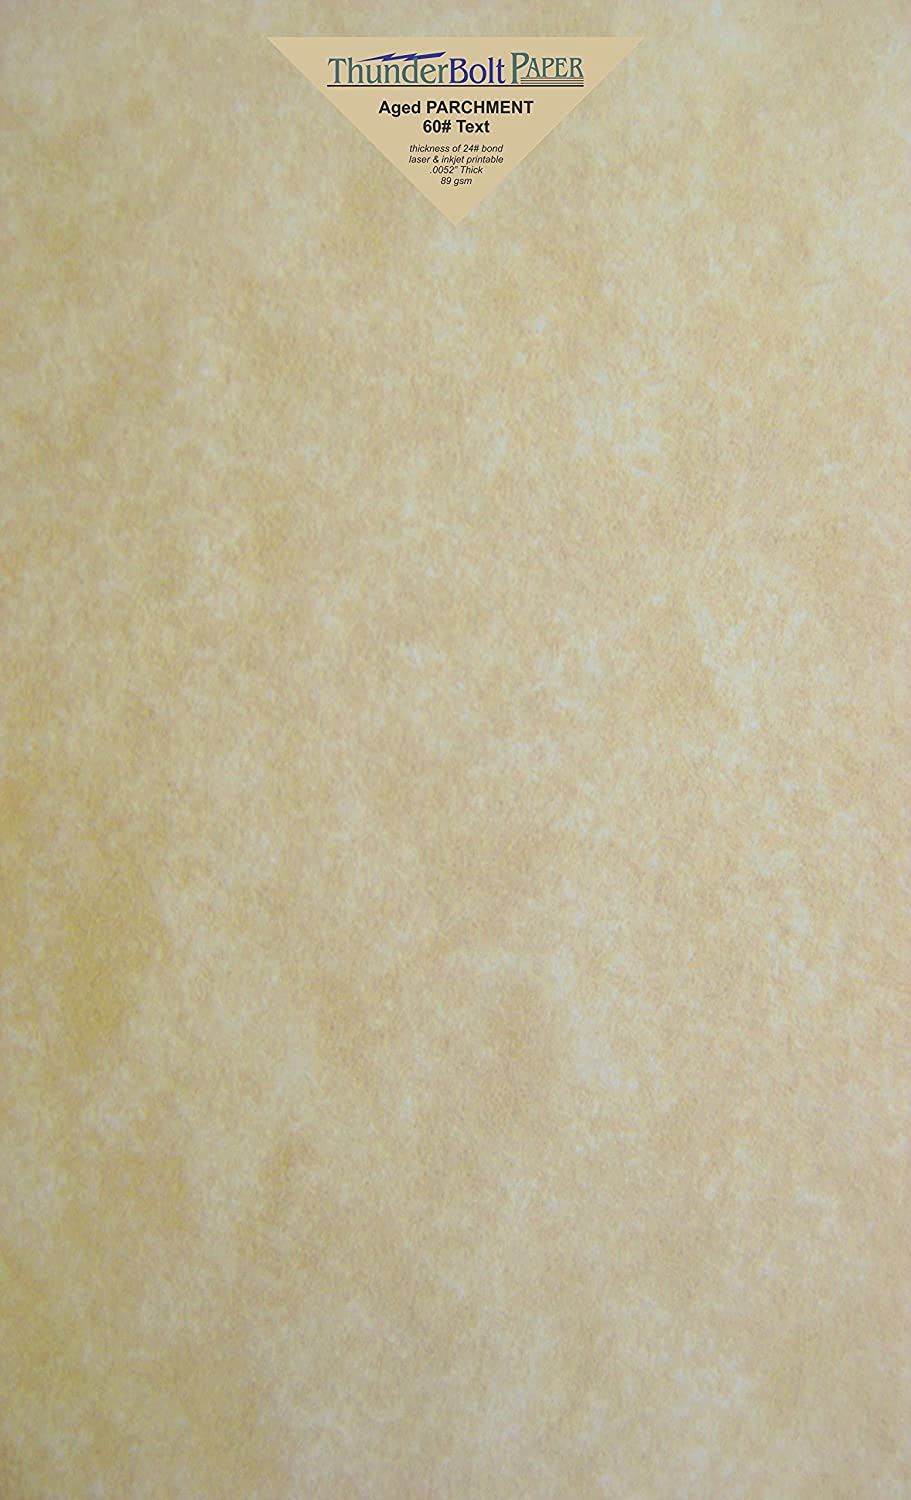 150 Old Age Parchment 60# Text (=24# Bond) Paper Sheets - 8.5